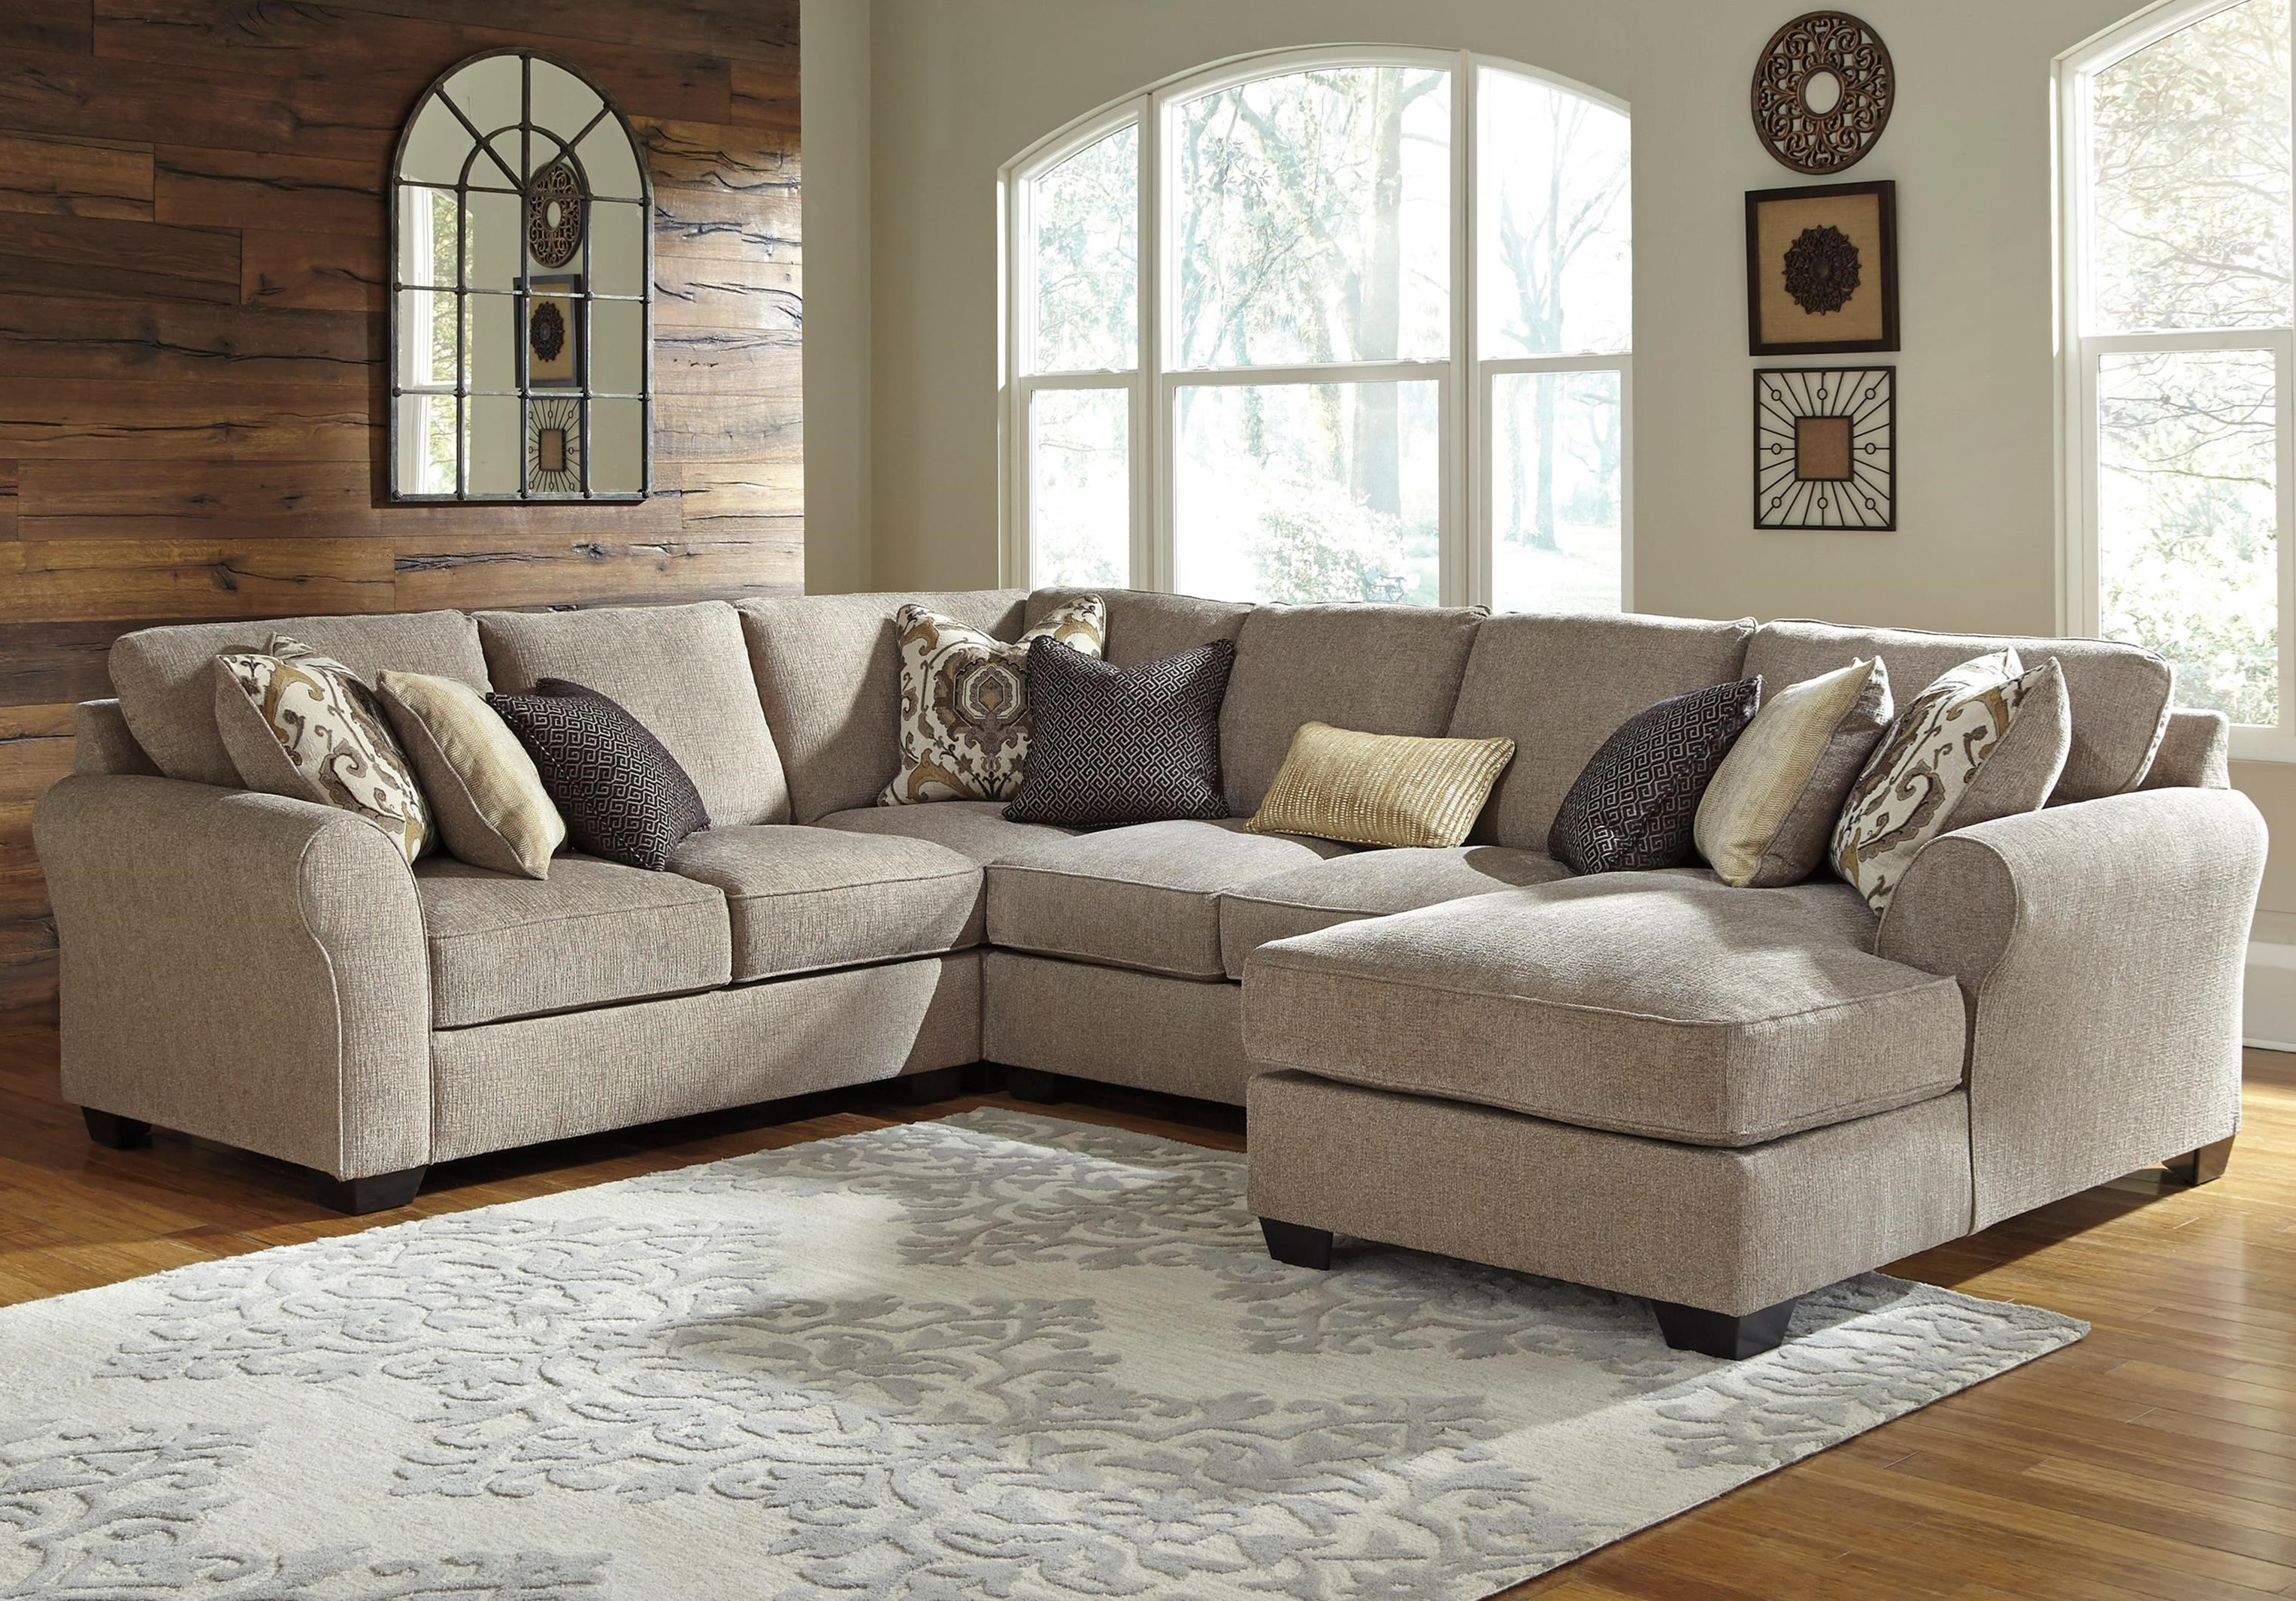 Pantomine 4-Piece Sectional with Right Chaise by Benchcraft at Walker's Furniture